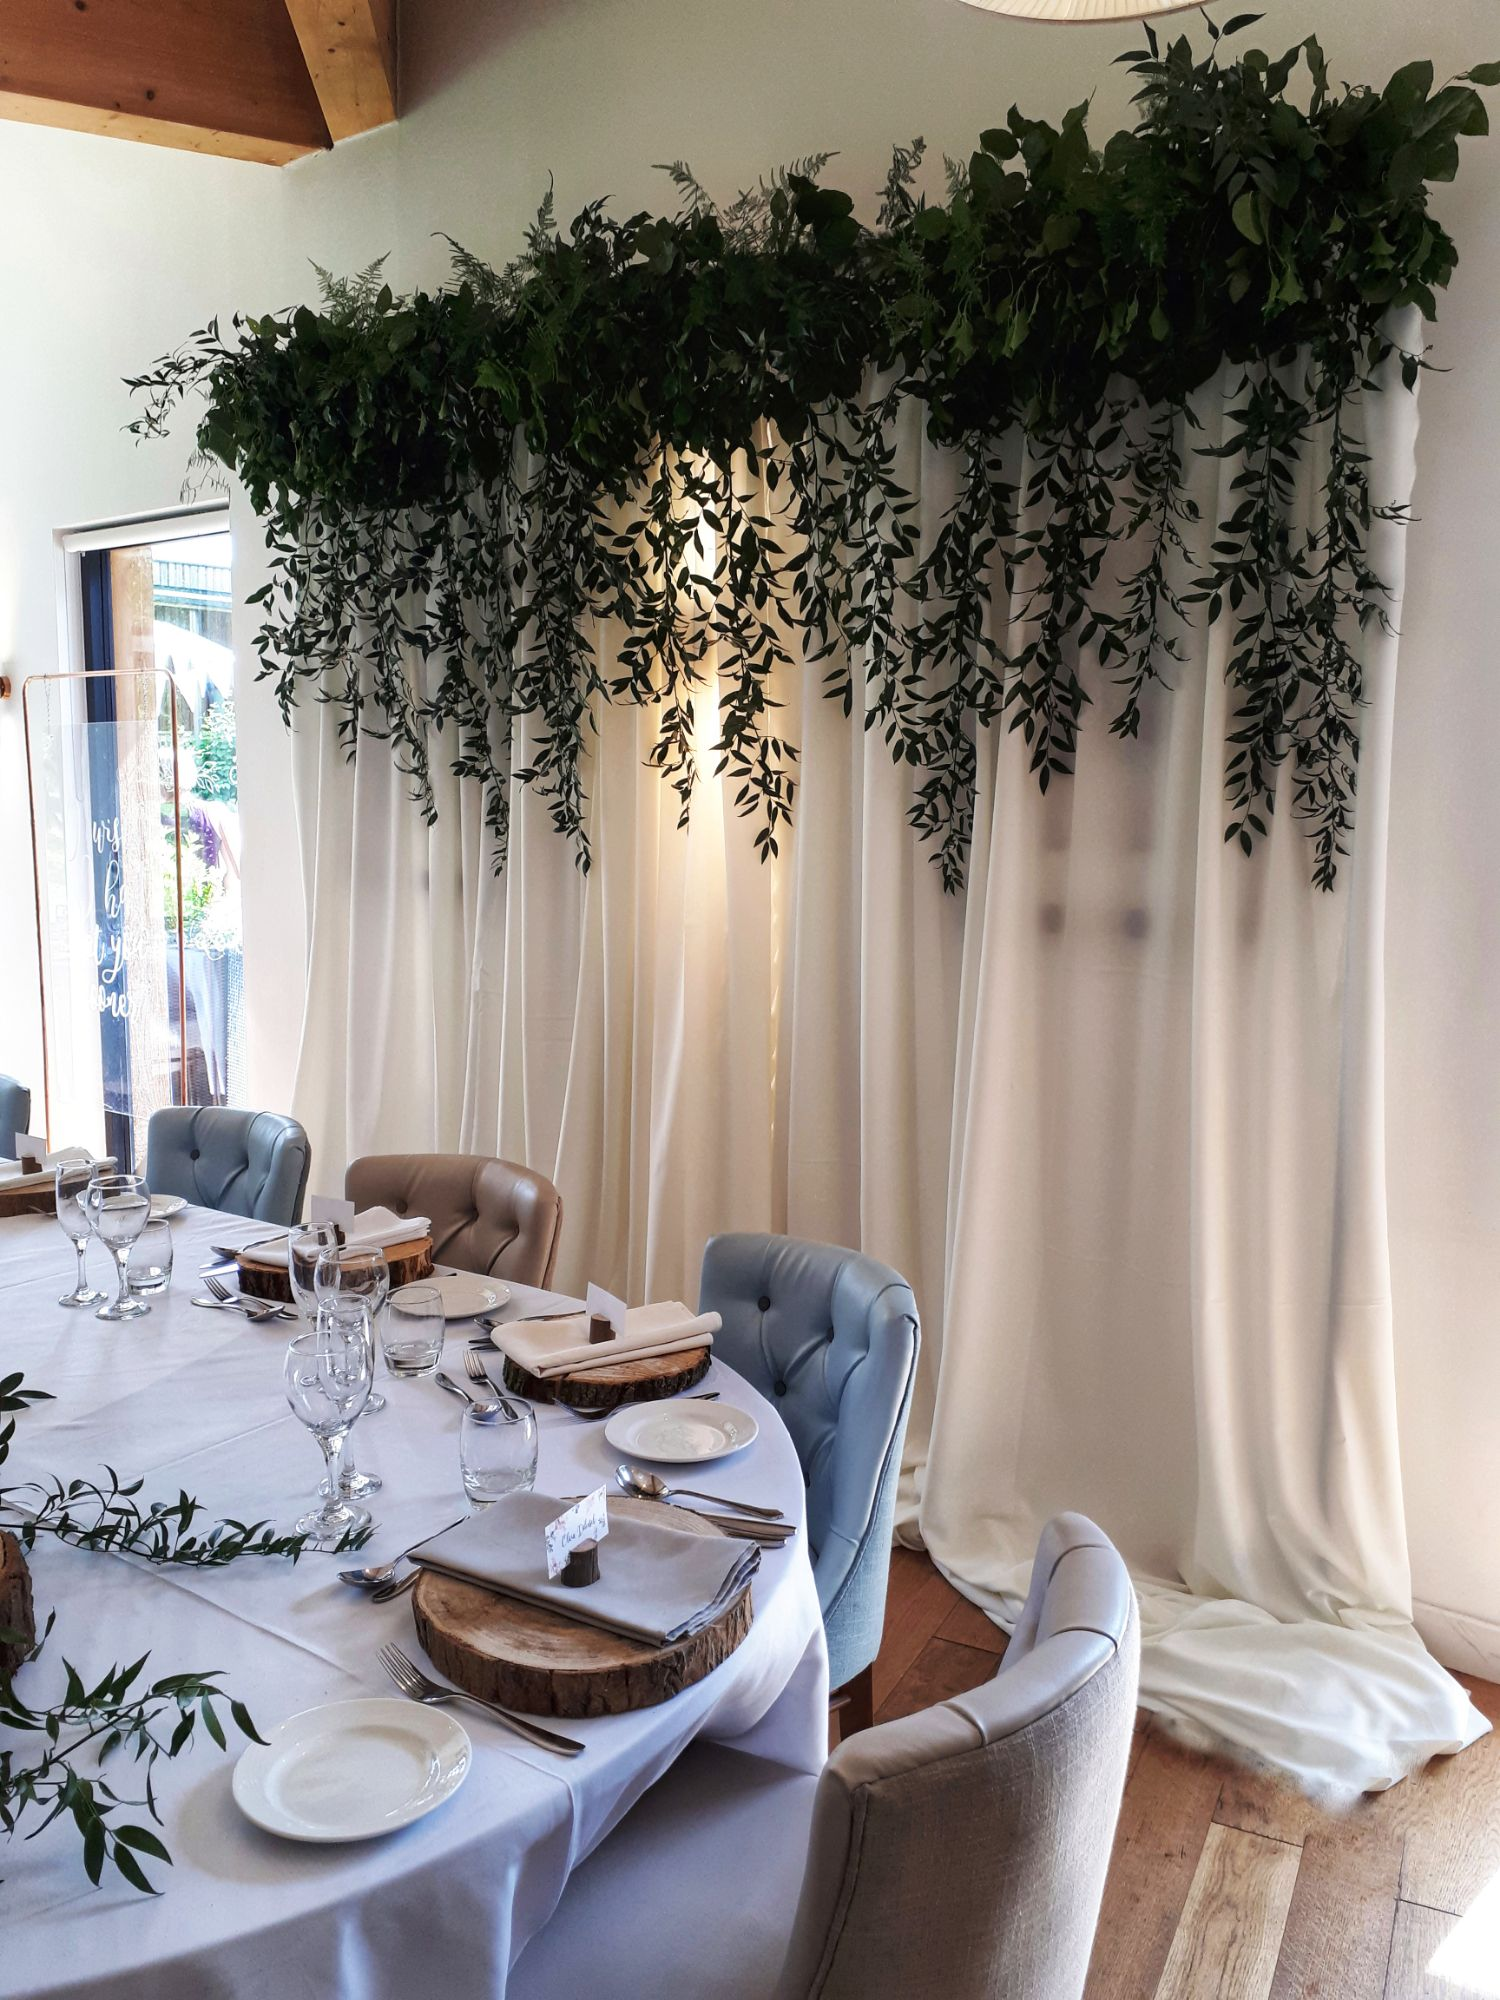 Foliage wedding decor backdrop